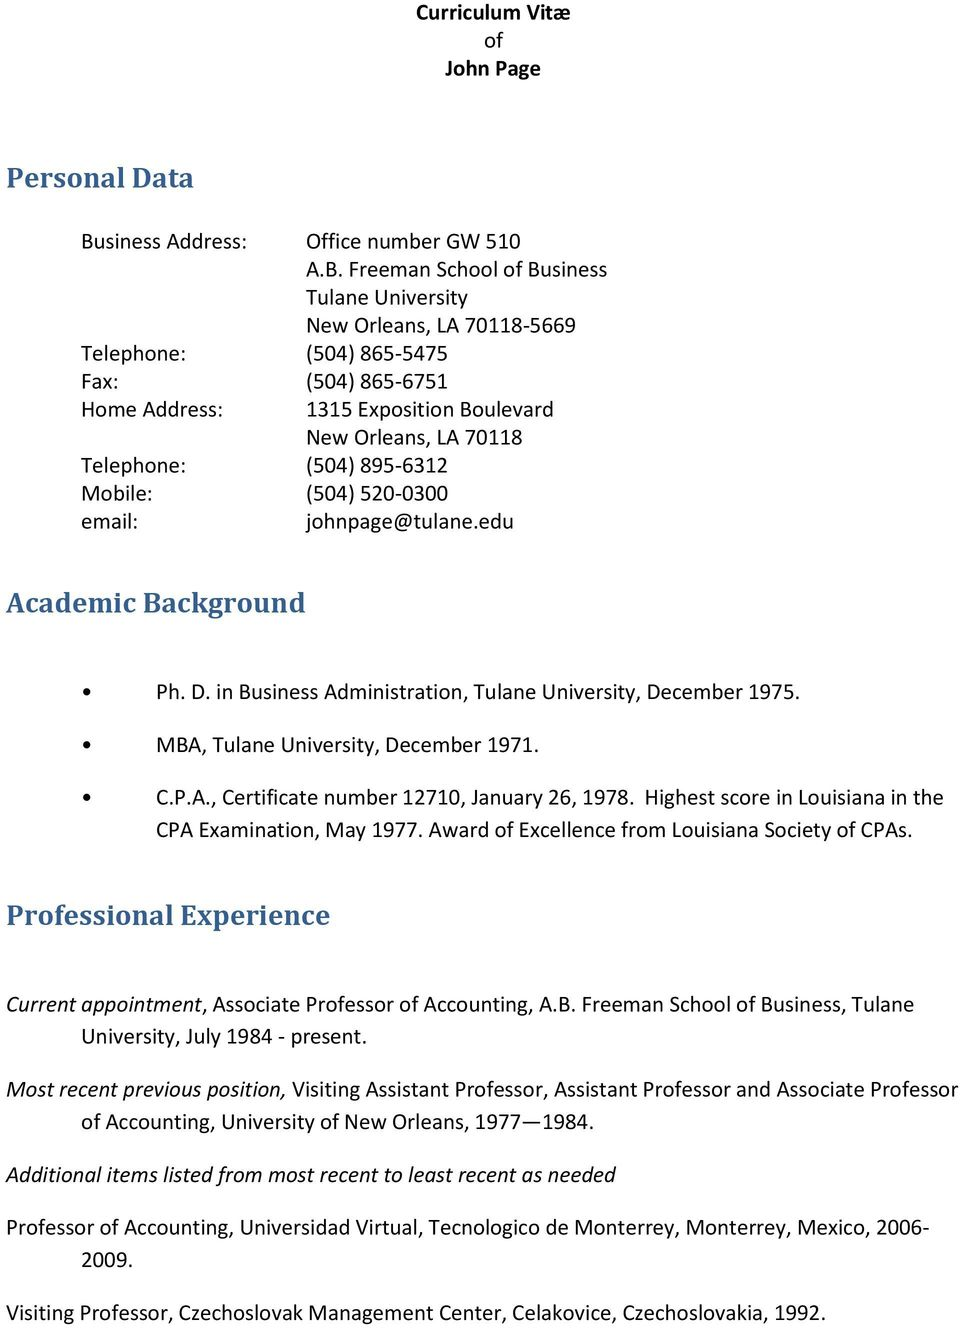 Curriculum Vitae Of John Page Ph D In Business Administration